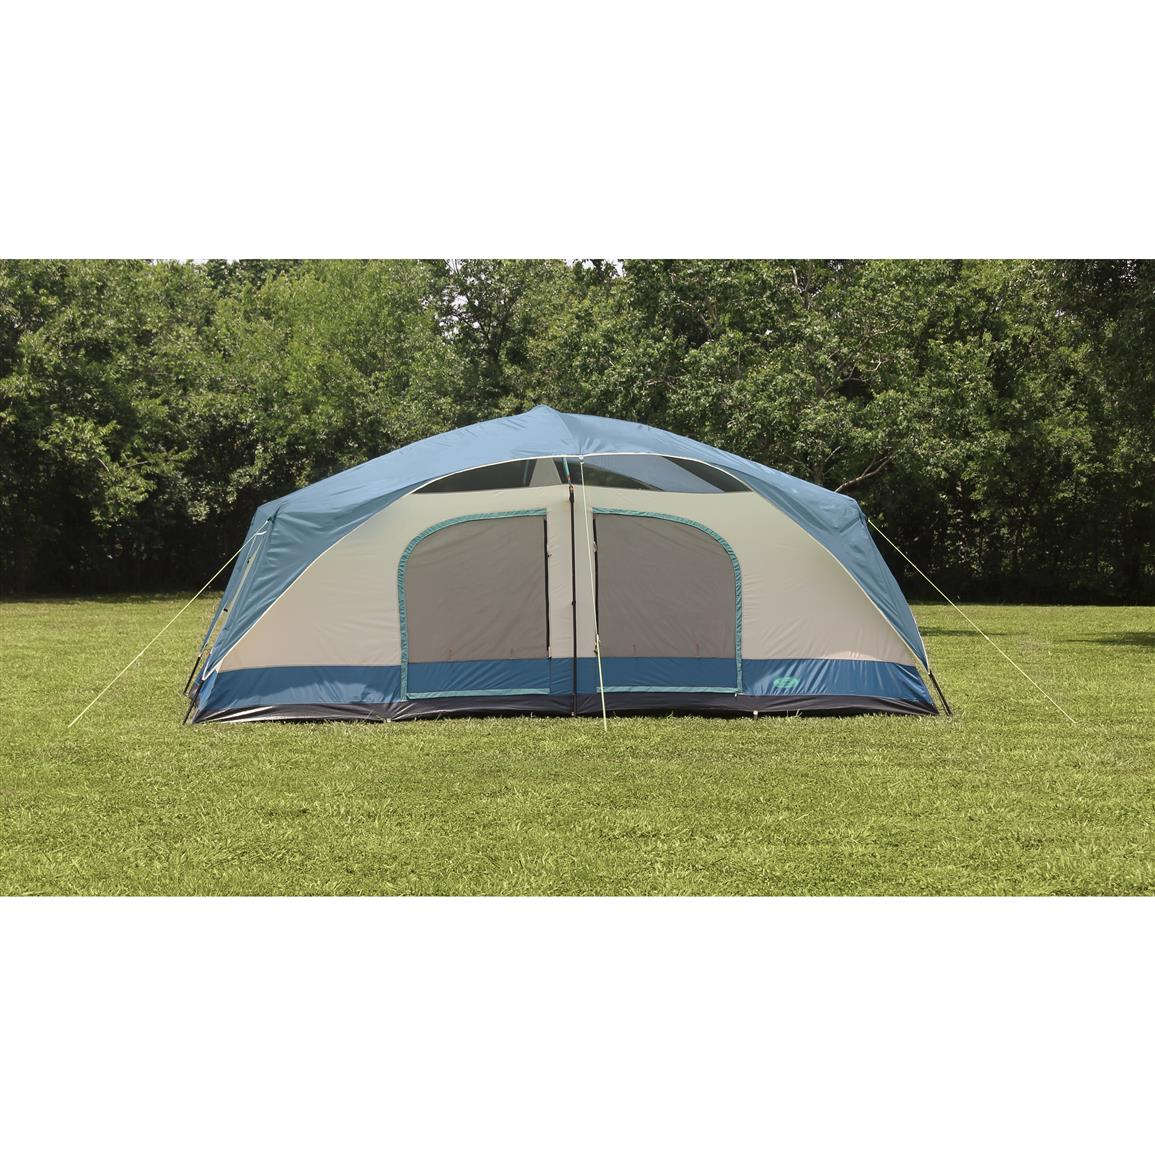 Texsport Blue Mountain 2-Room Cabin Dome Tent